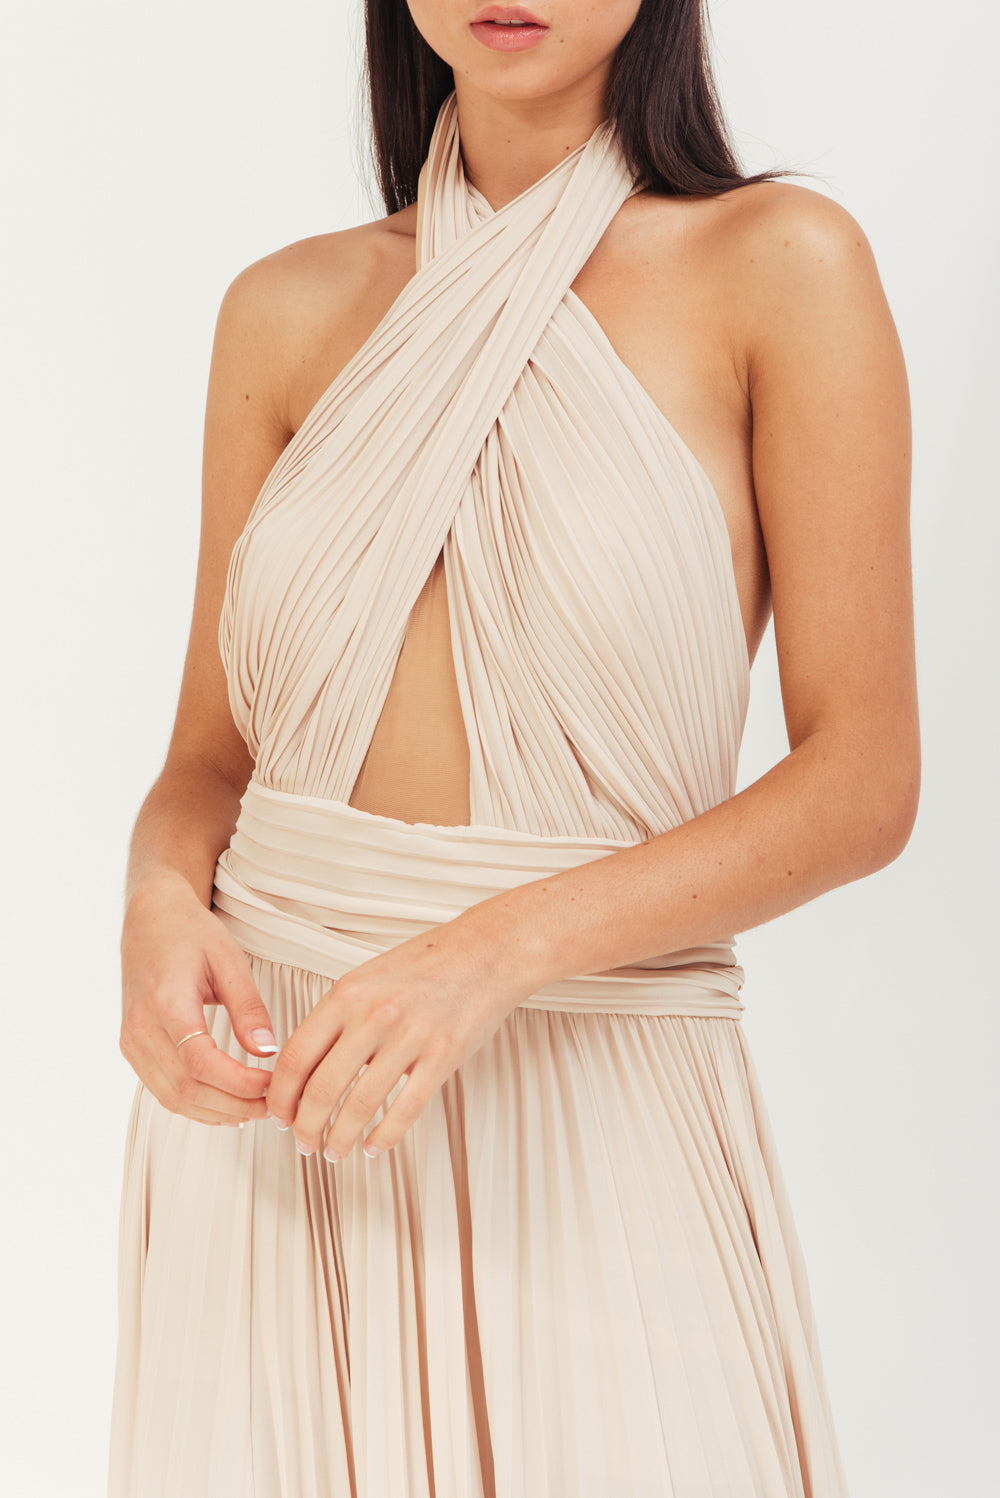 BEIGE LONG CREPE PLISSE DRESS WITH X IN FRONT AND OPEN BACK